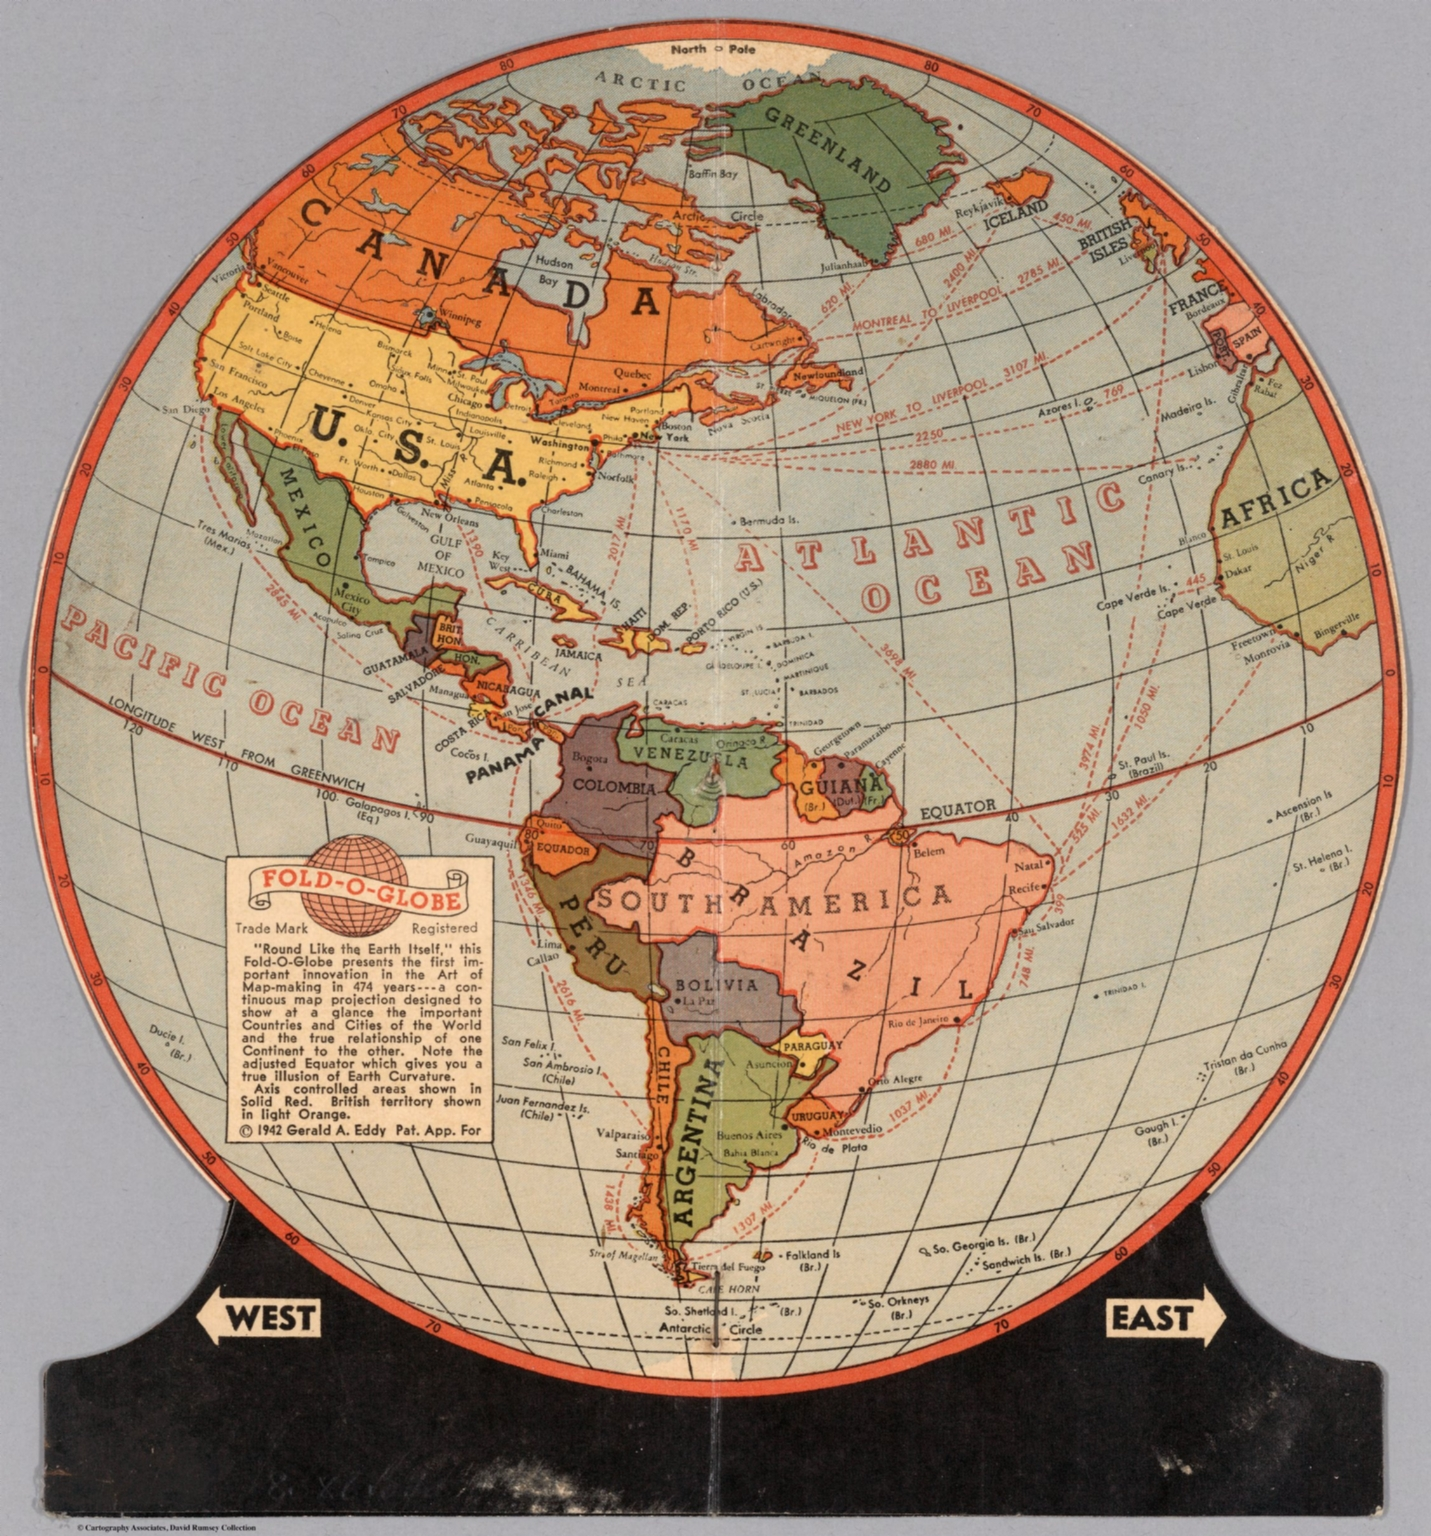 FoldOGlobe Trade Mark Registered Round Like the Earth – Globe Maps of the Earth